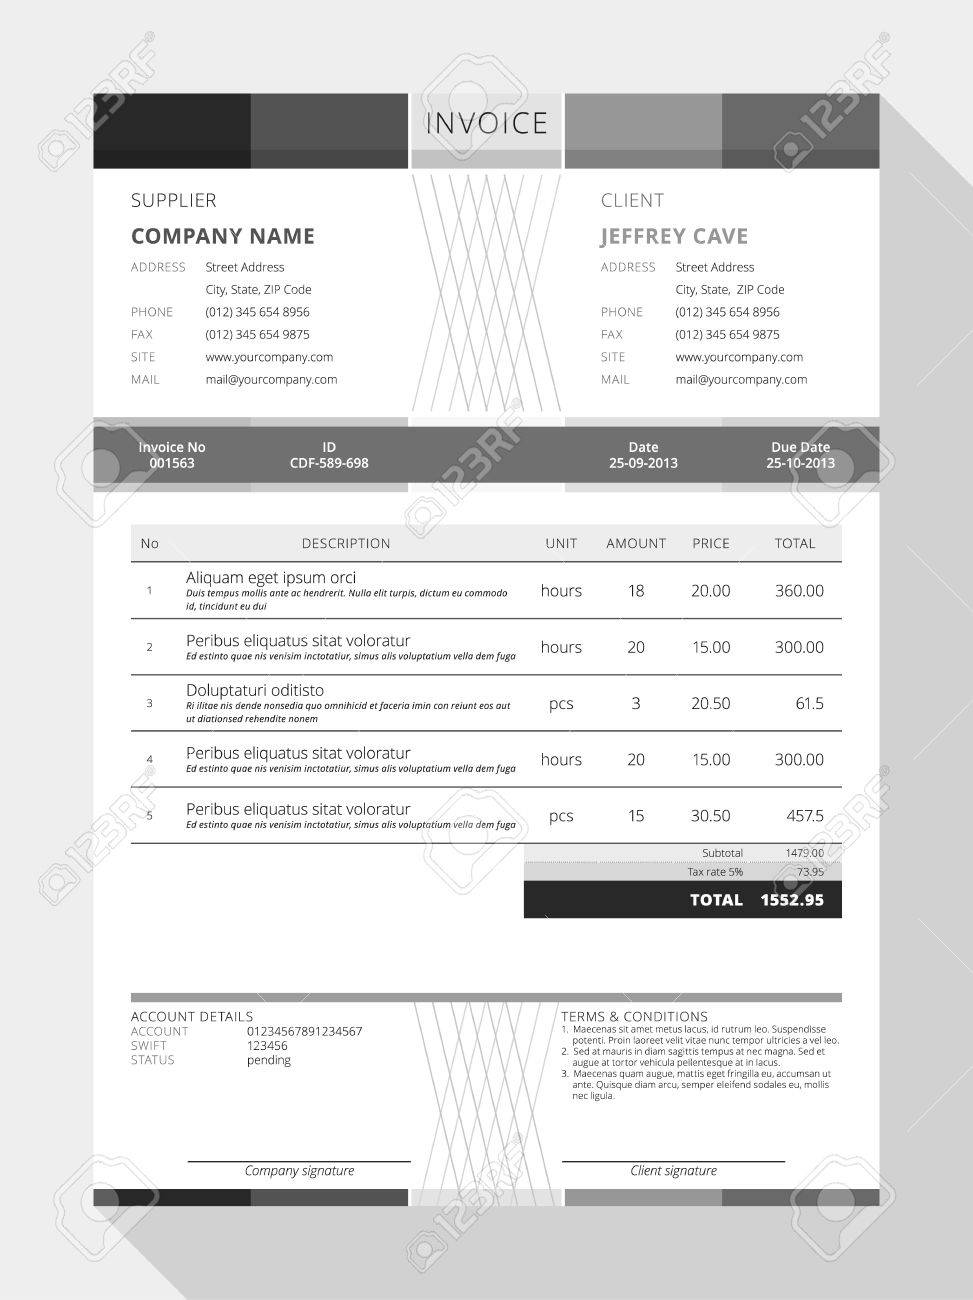 Maidofhonortoastus  Gorgeous Design An Invoice  Professional Graphic Design Invoice  With Gorgeous Vector Customizable Invoice Form Template Design Vector   Design An Invoice With Nice Client Invoicing Also Free Plumbing Invoice Template In Addition Invoice Prices Of Cars And Free Invoice Template Australia As Well As Mail Invoice Additionally Example Of Invoice For Services Rendered From Happytomco With Maidofhonortoastus  Gorgeous Design An Invoice  Professional Graphic Design Invoice  With Nice Vector Customizable Invoice Form Template Design Vector   Design An Invoice And Gorgeous Client Invoicing Also Free Plumbing Invoice Template In Addition Invoice Prices Of Cars From Happytomco